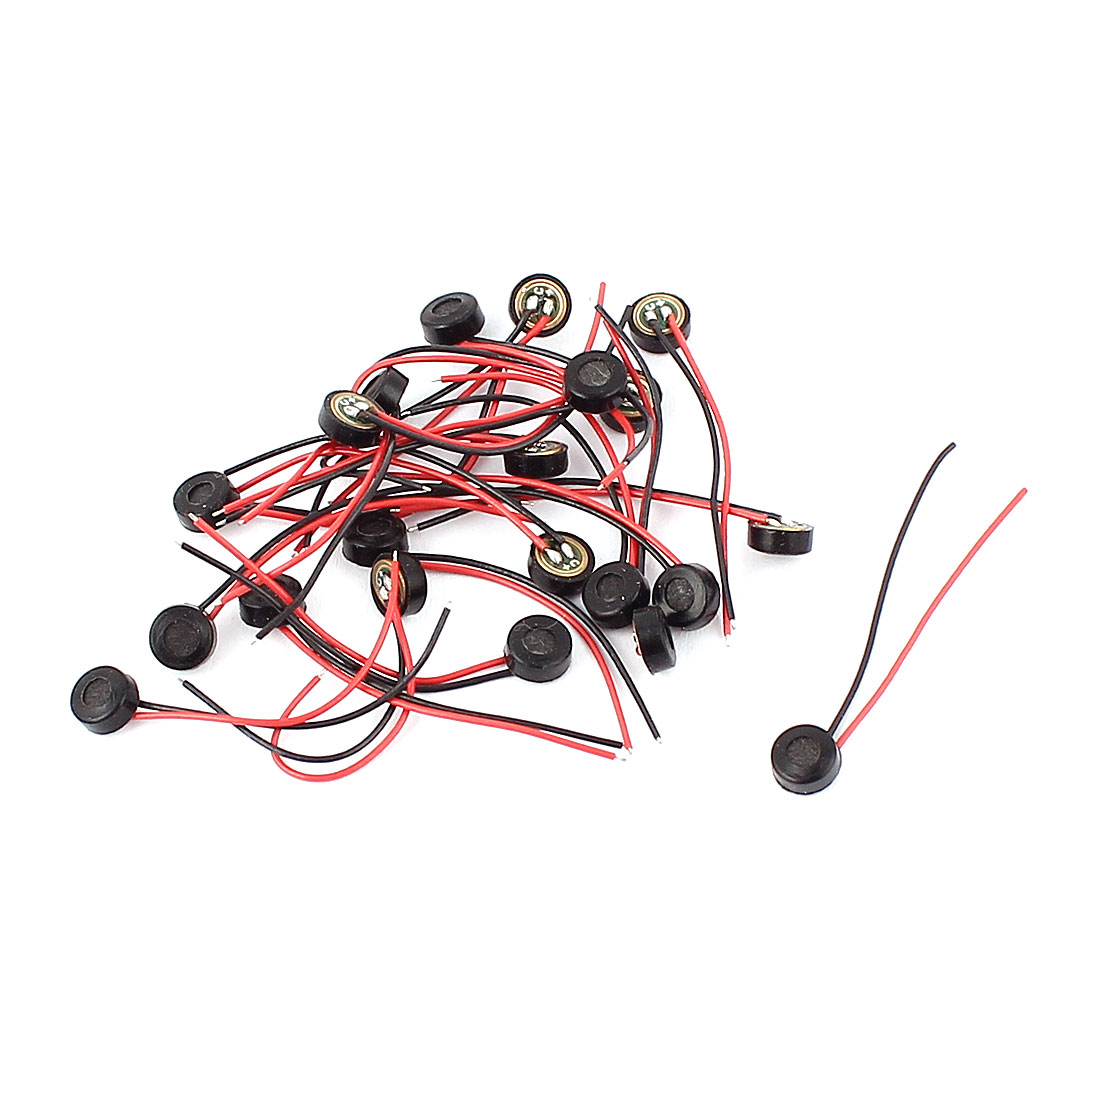 20 Pcs 4.5mm x 2mm Wire Cable MIC Capsule Electret Condenser Microphone